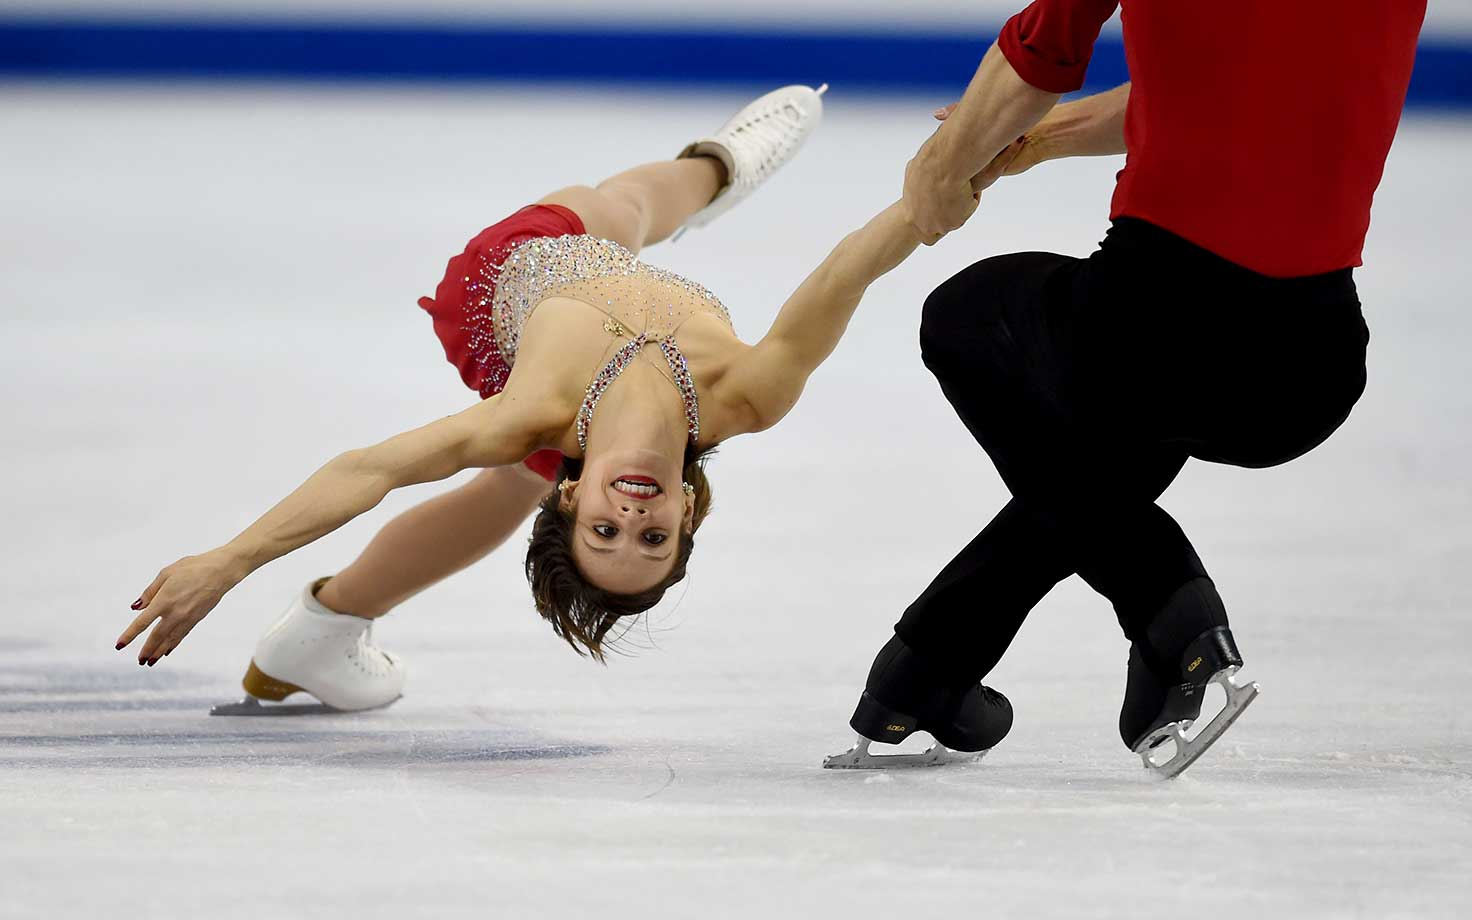 Meagan Duhamel and Eric Radford of Canada perform their short program in the Pairs competition.